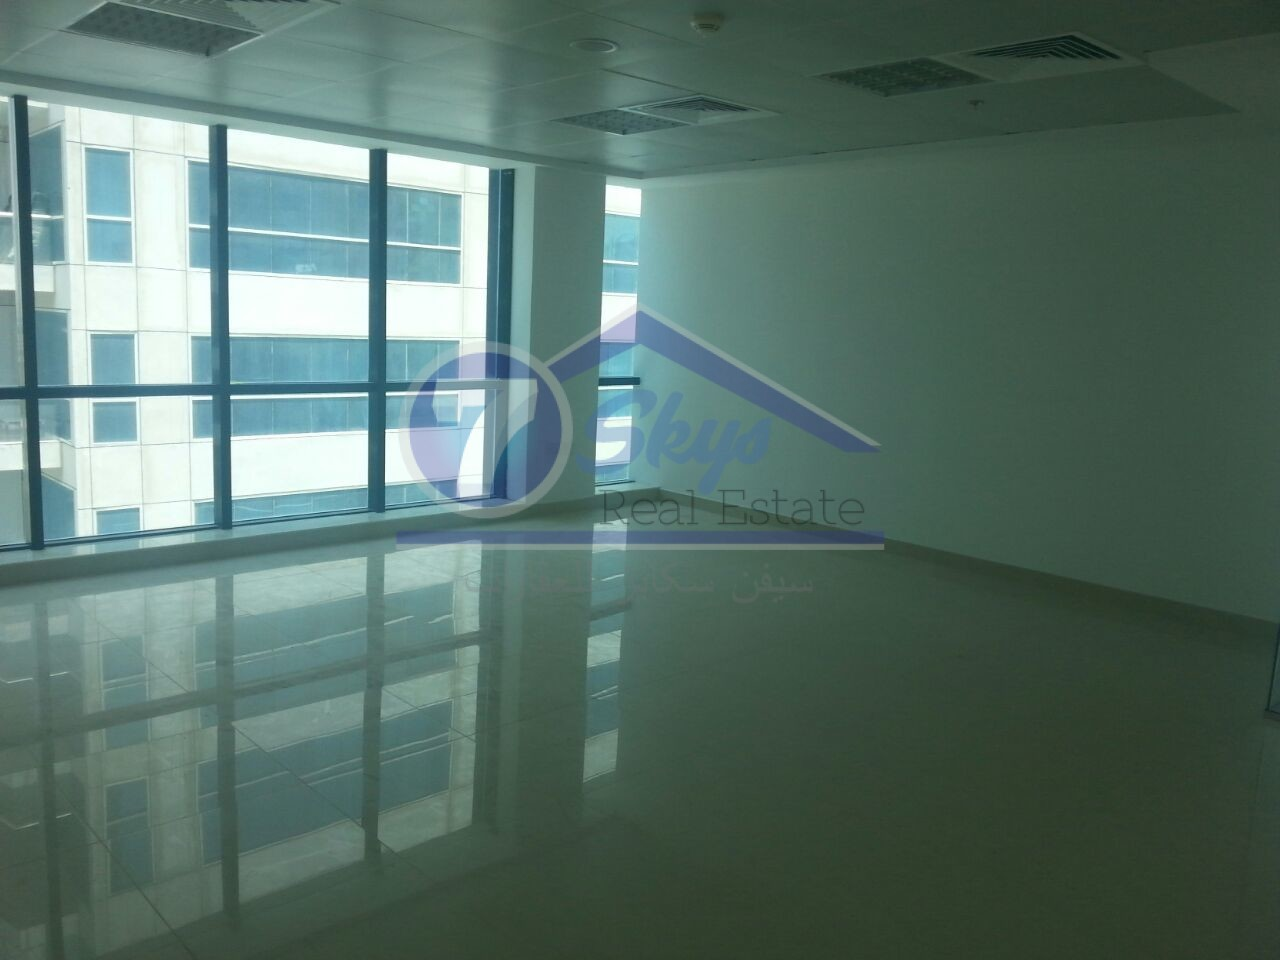 office-for-sale-with-good-roi-in-silicon